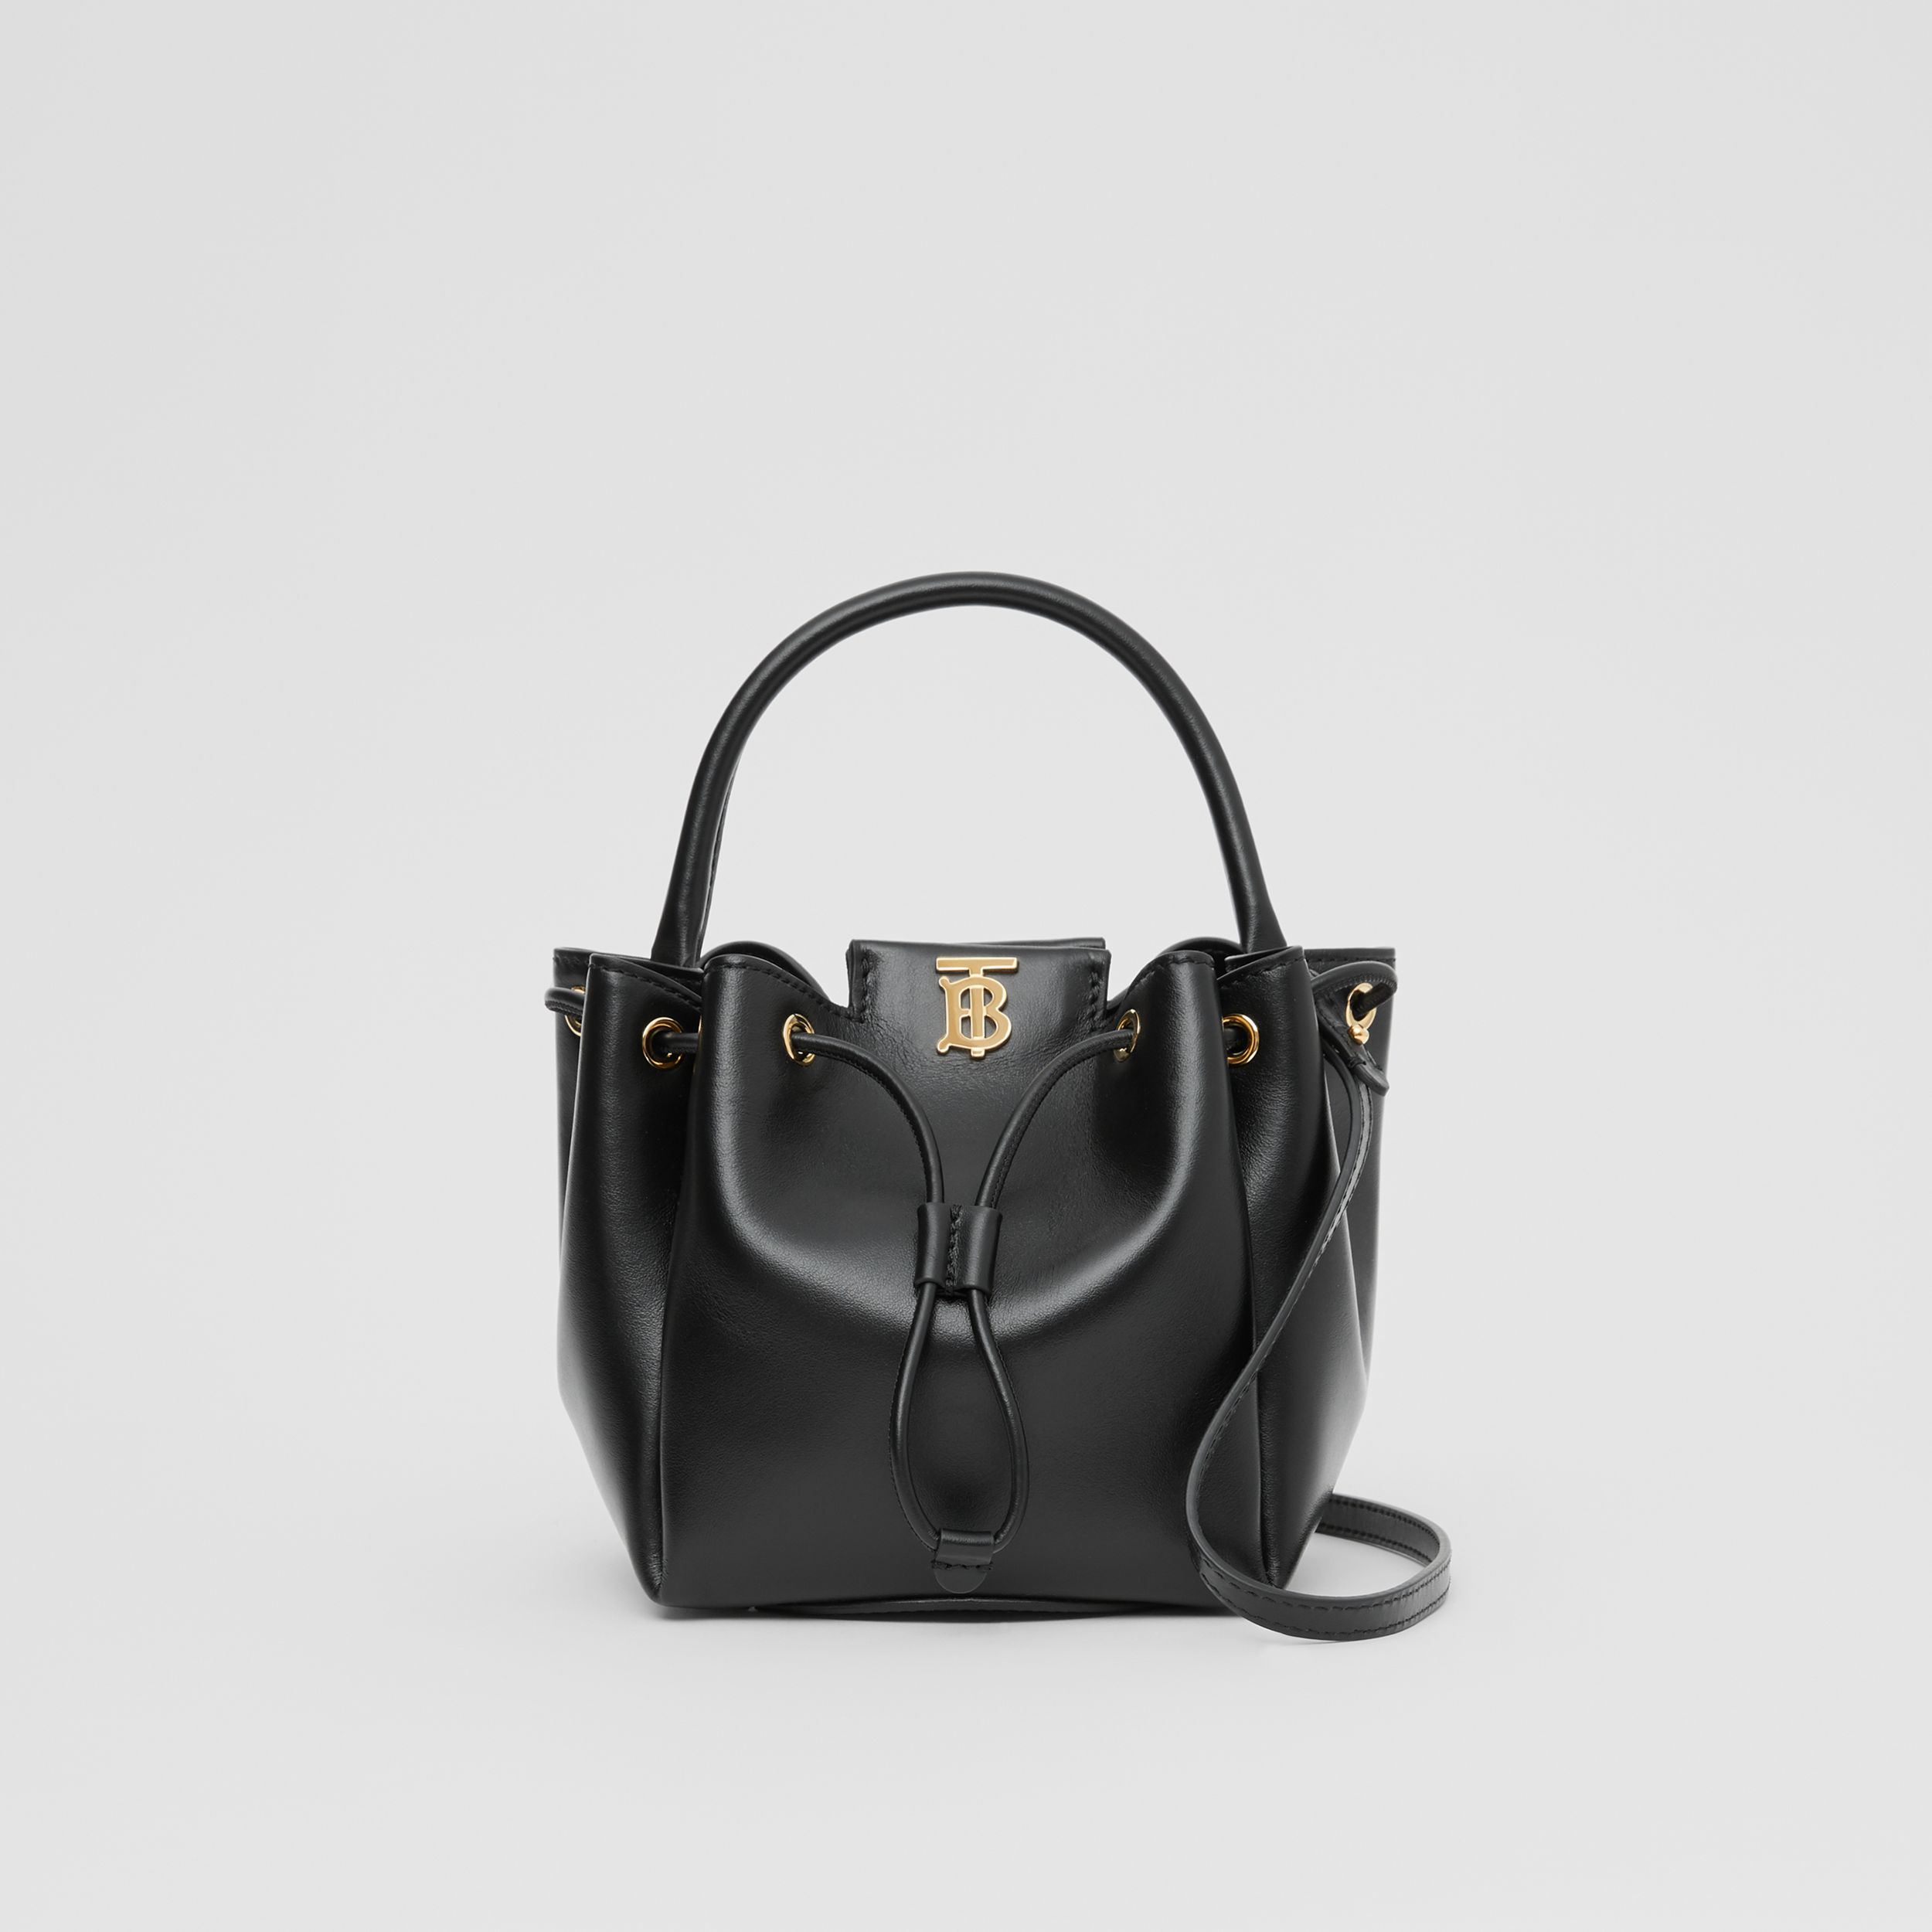 Monogram Motif Leather Bucket Bag in Black - Women | Burberry - 1